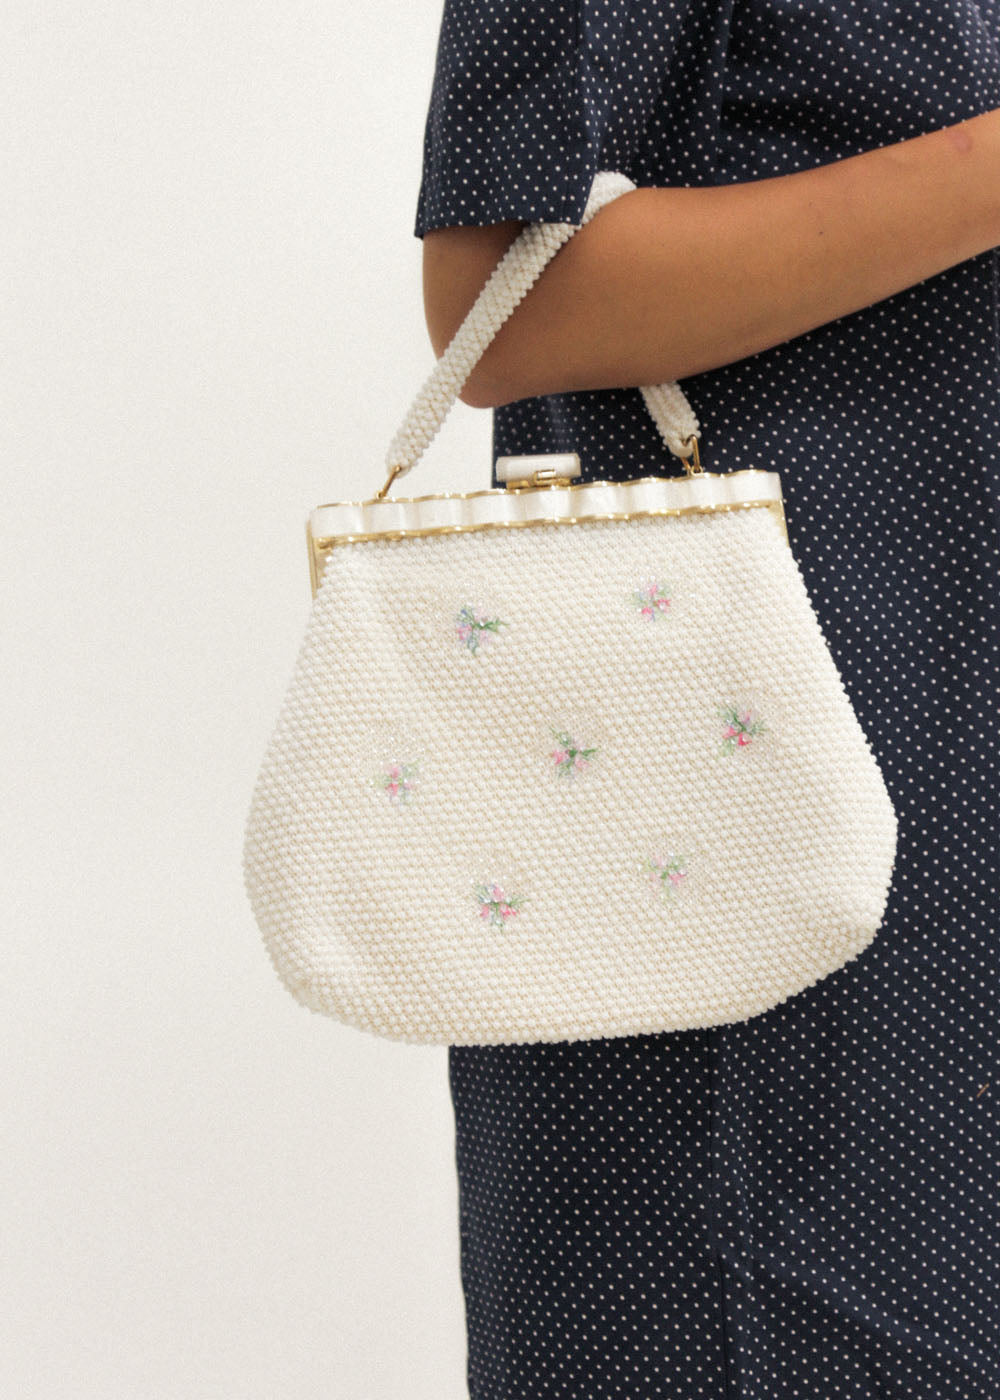 Vintage Beaded White/Floral Purse